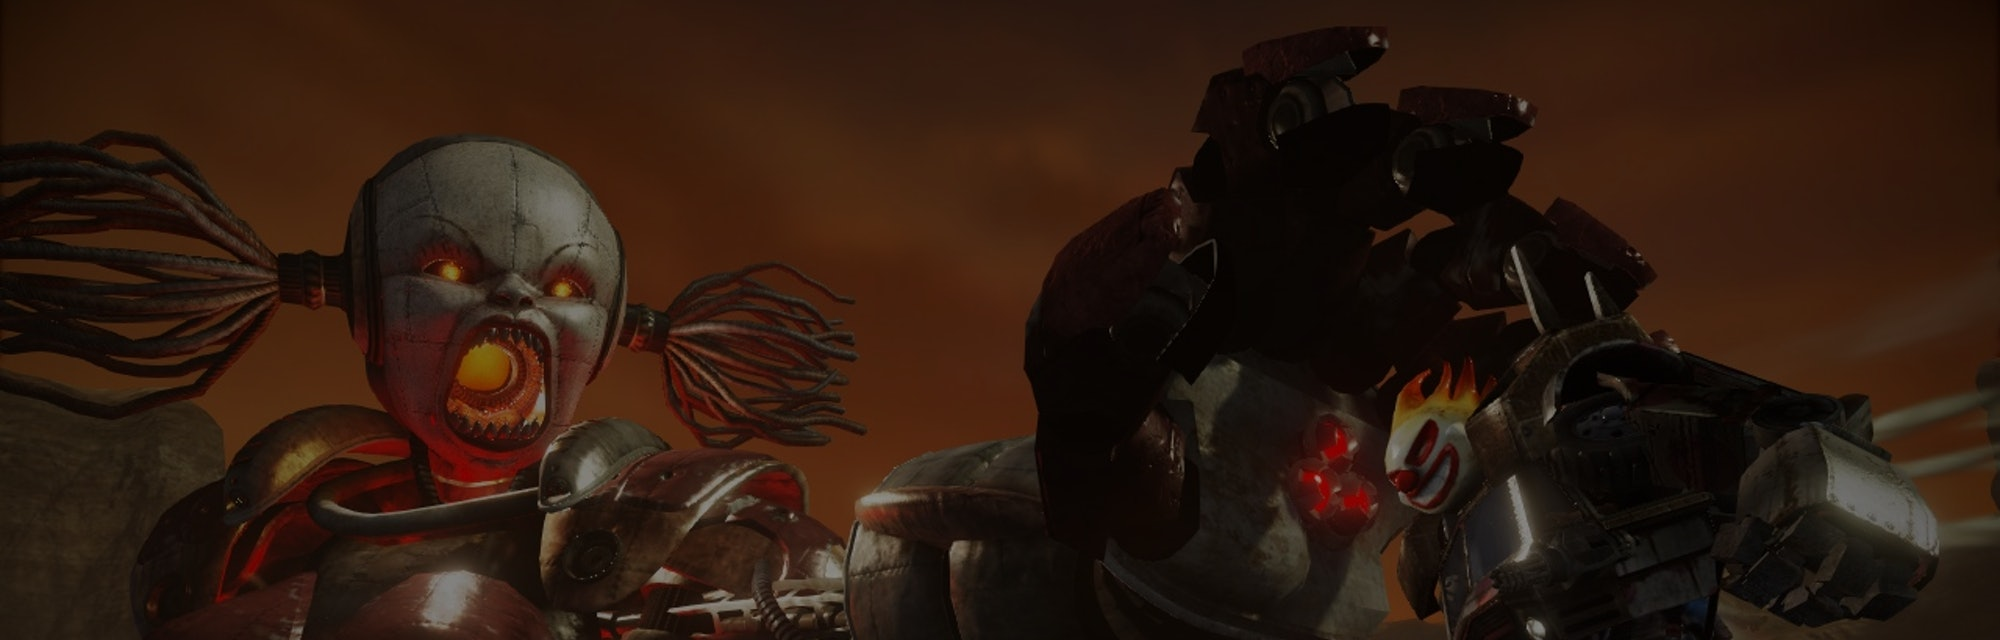 A screenshot from Twisted Metal (2012)